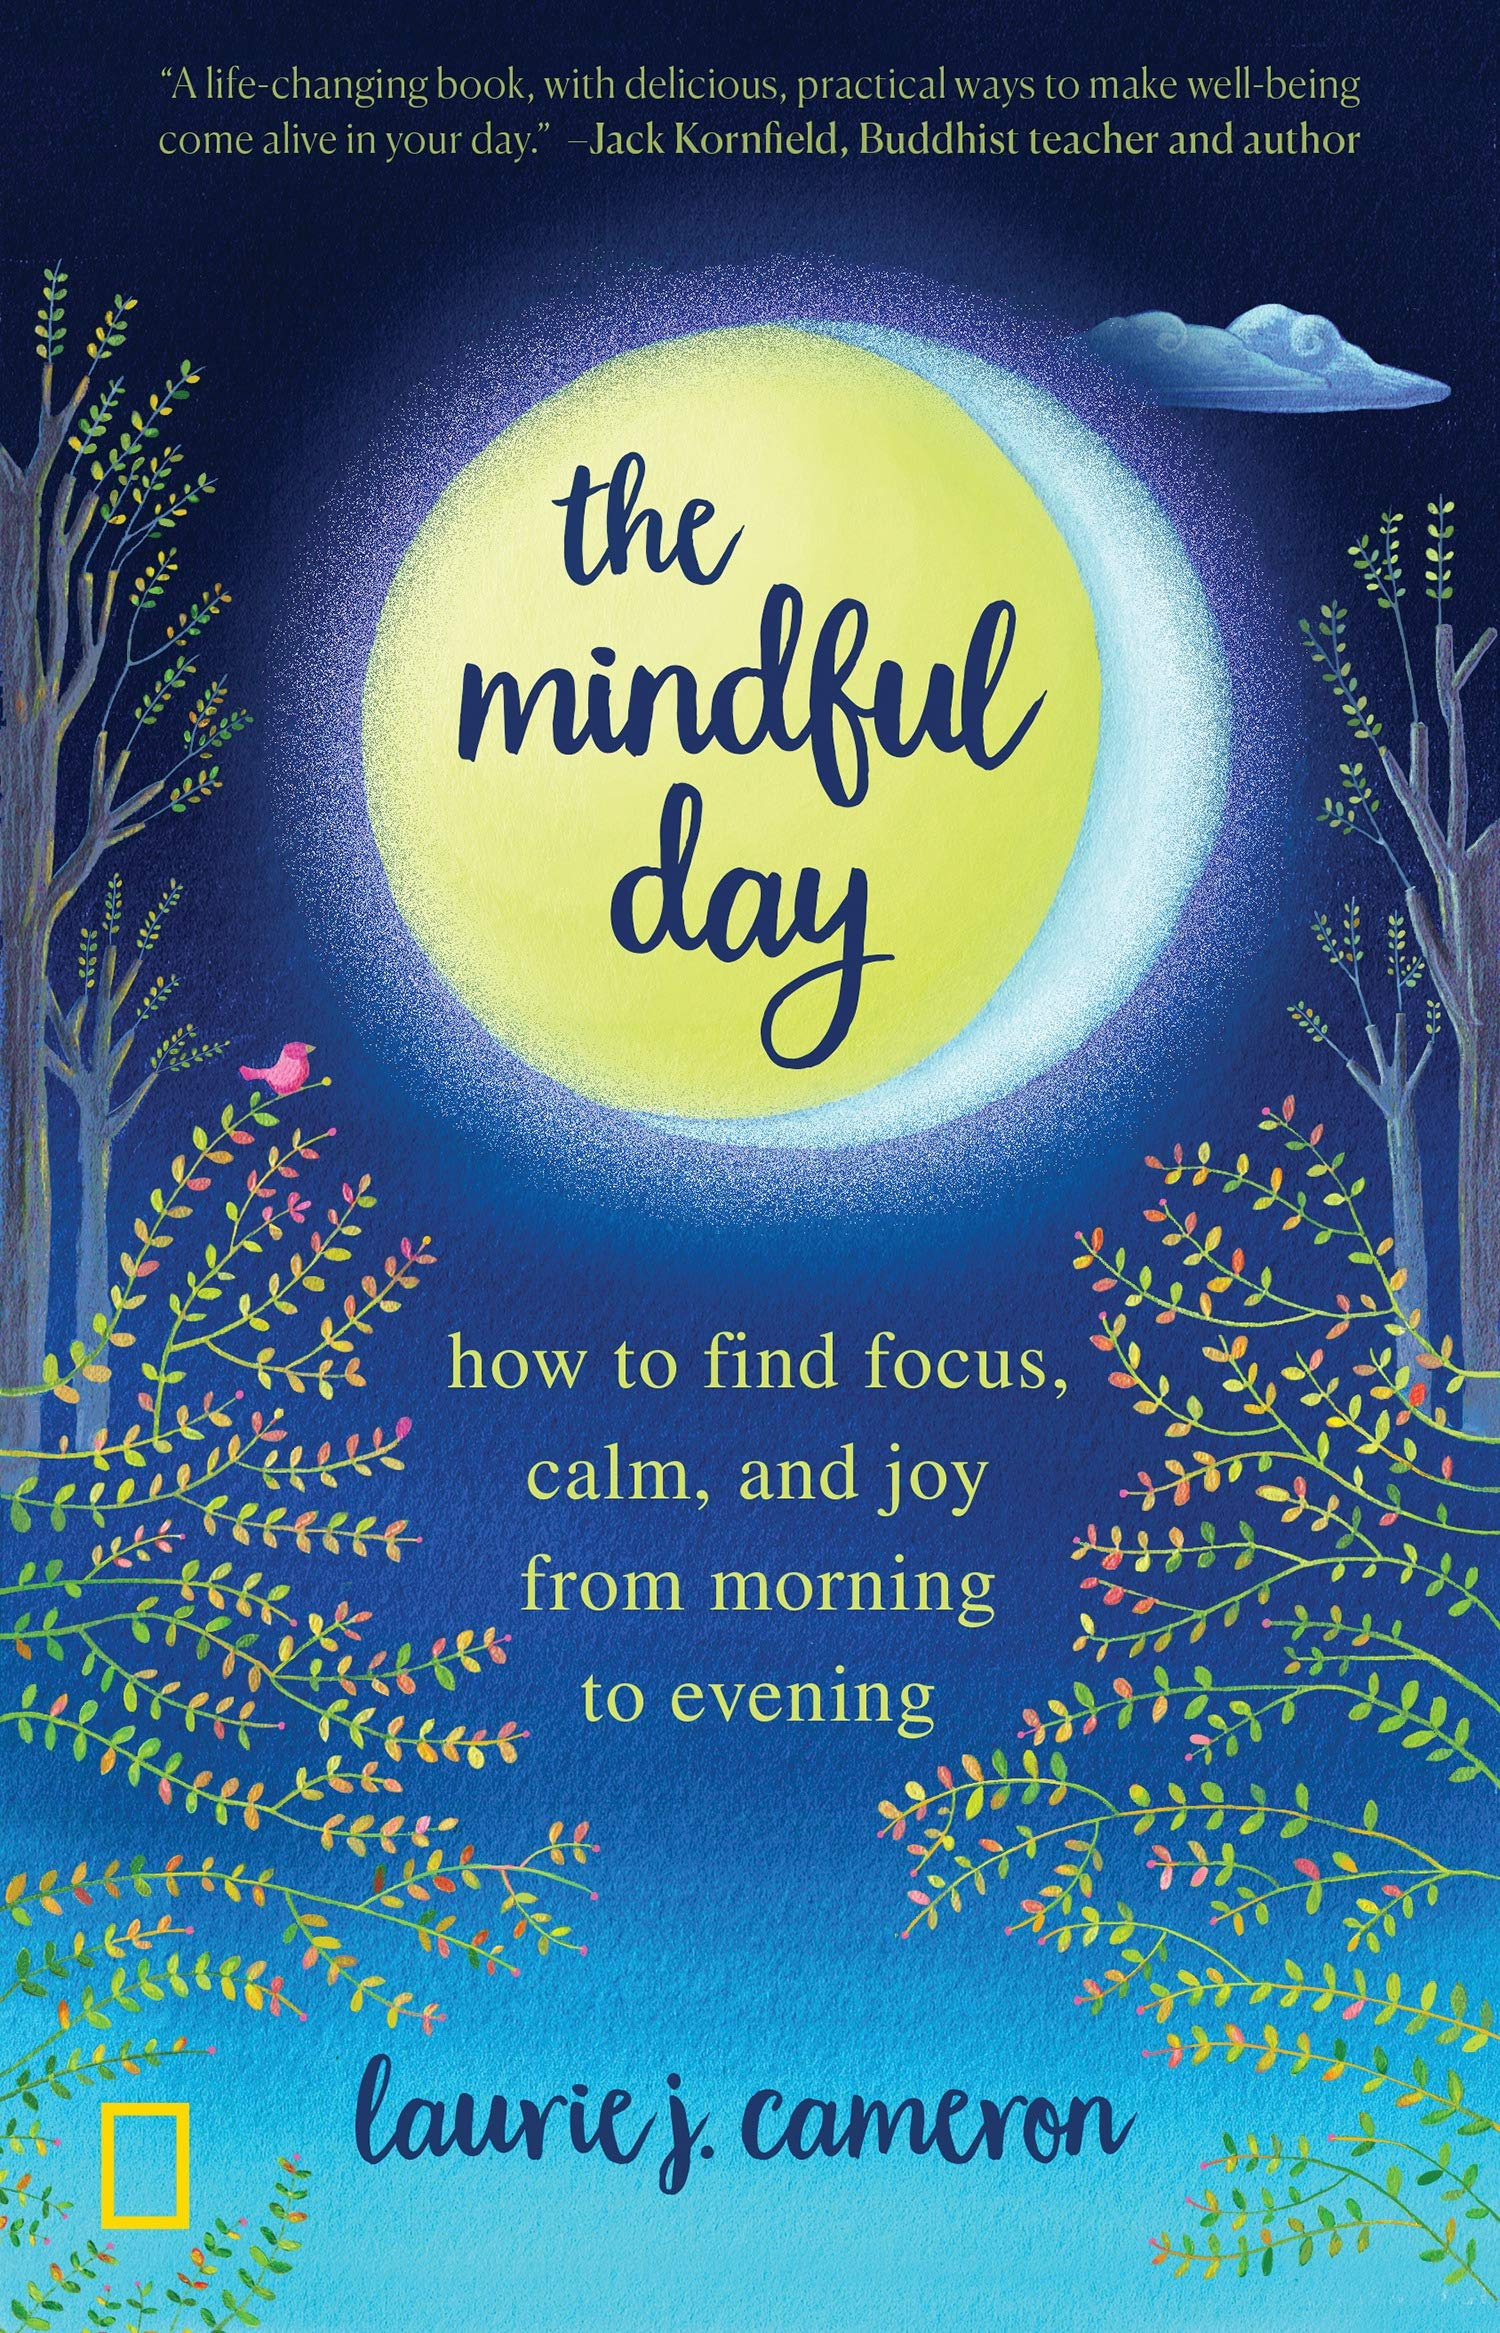 The Mindful Day: How to Find Focus, Calm, and Joy From Morning to Evening